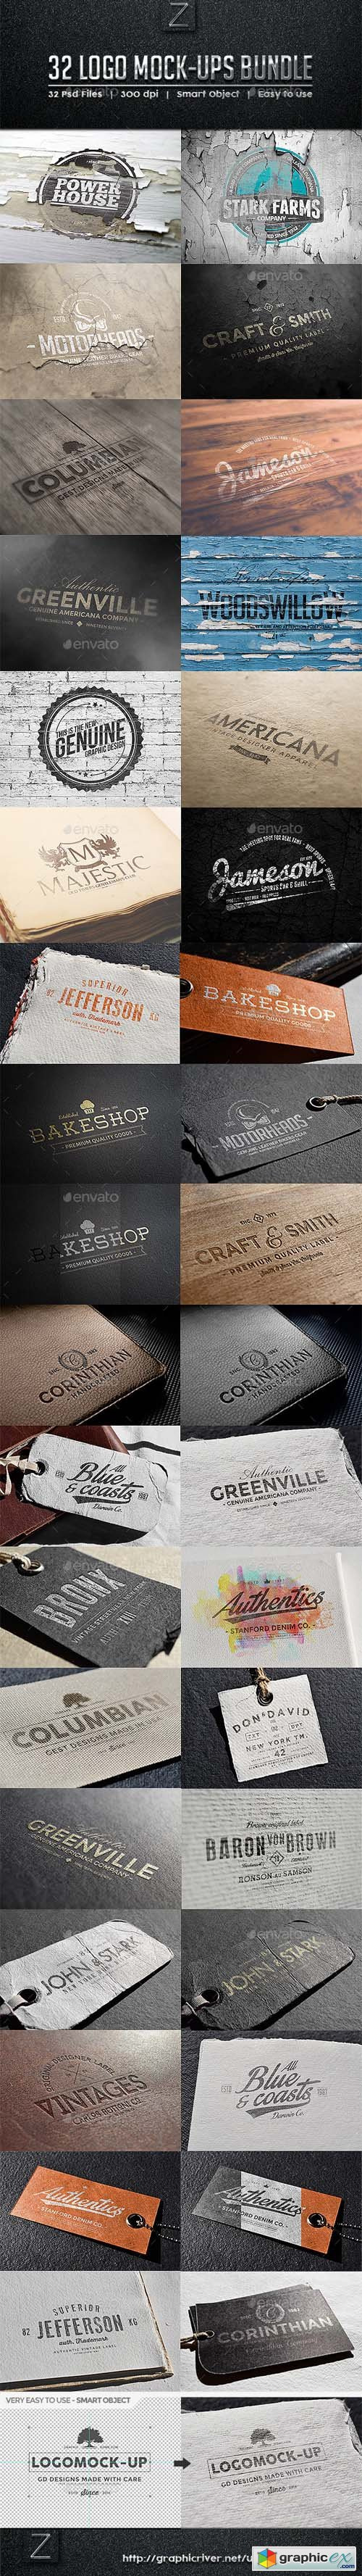 32 Logo Mock-ups Bundle